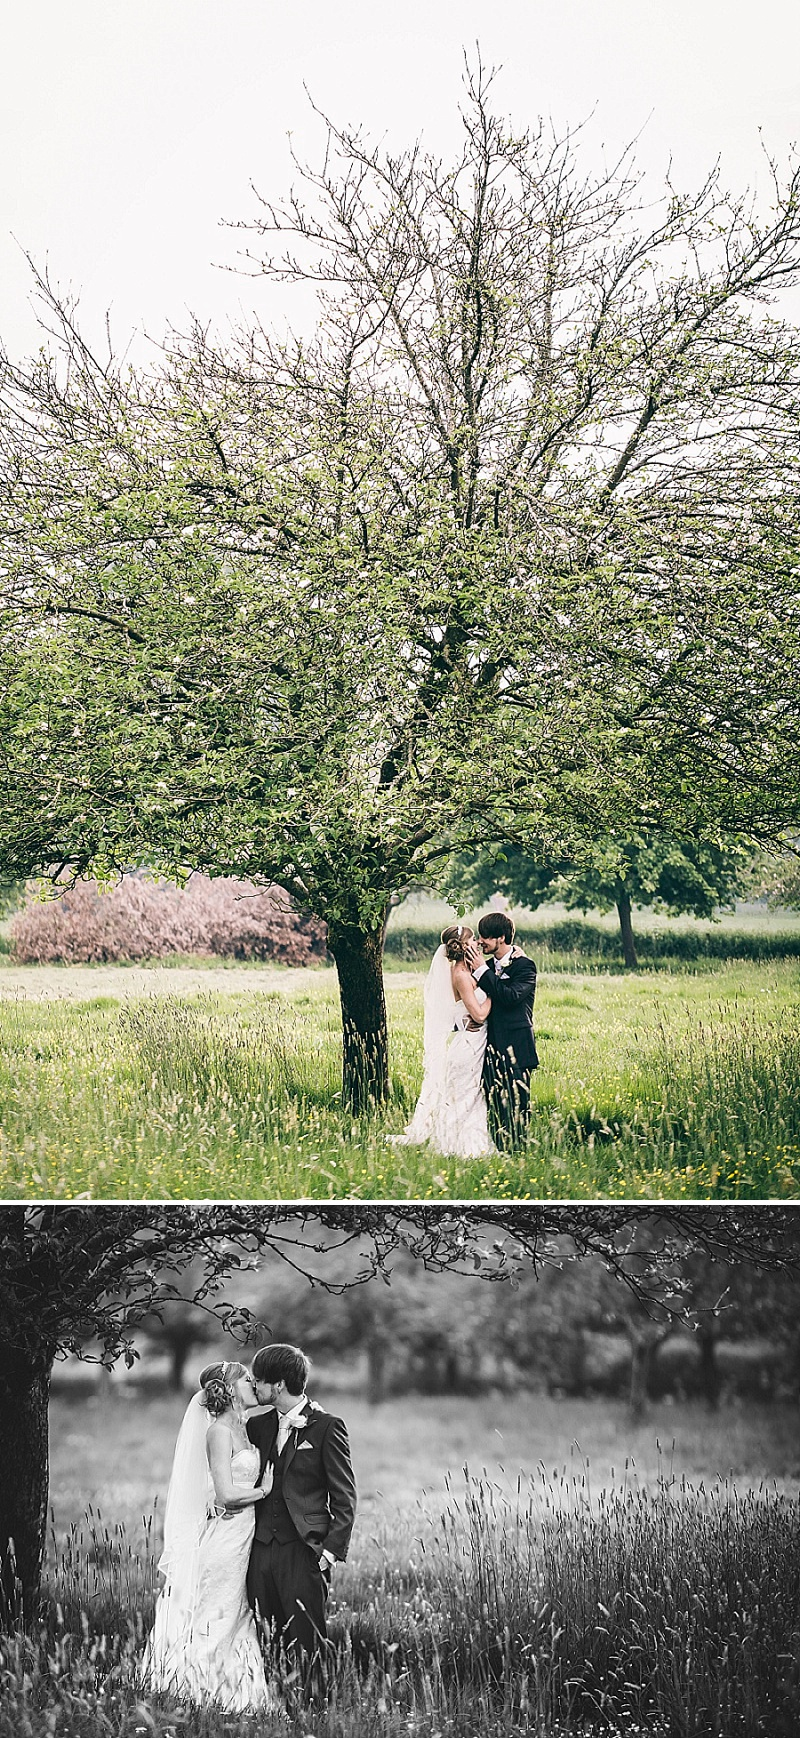 Elegant Wedding At Brympton House In Somerset With A Duck Egg Blue Colour Scheme With Bride In Gown From Prima Moda And Groom In Suit From Moss With Images From How Photography 8